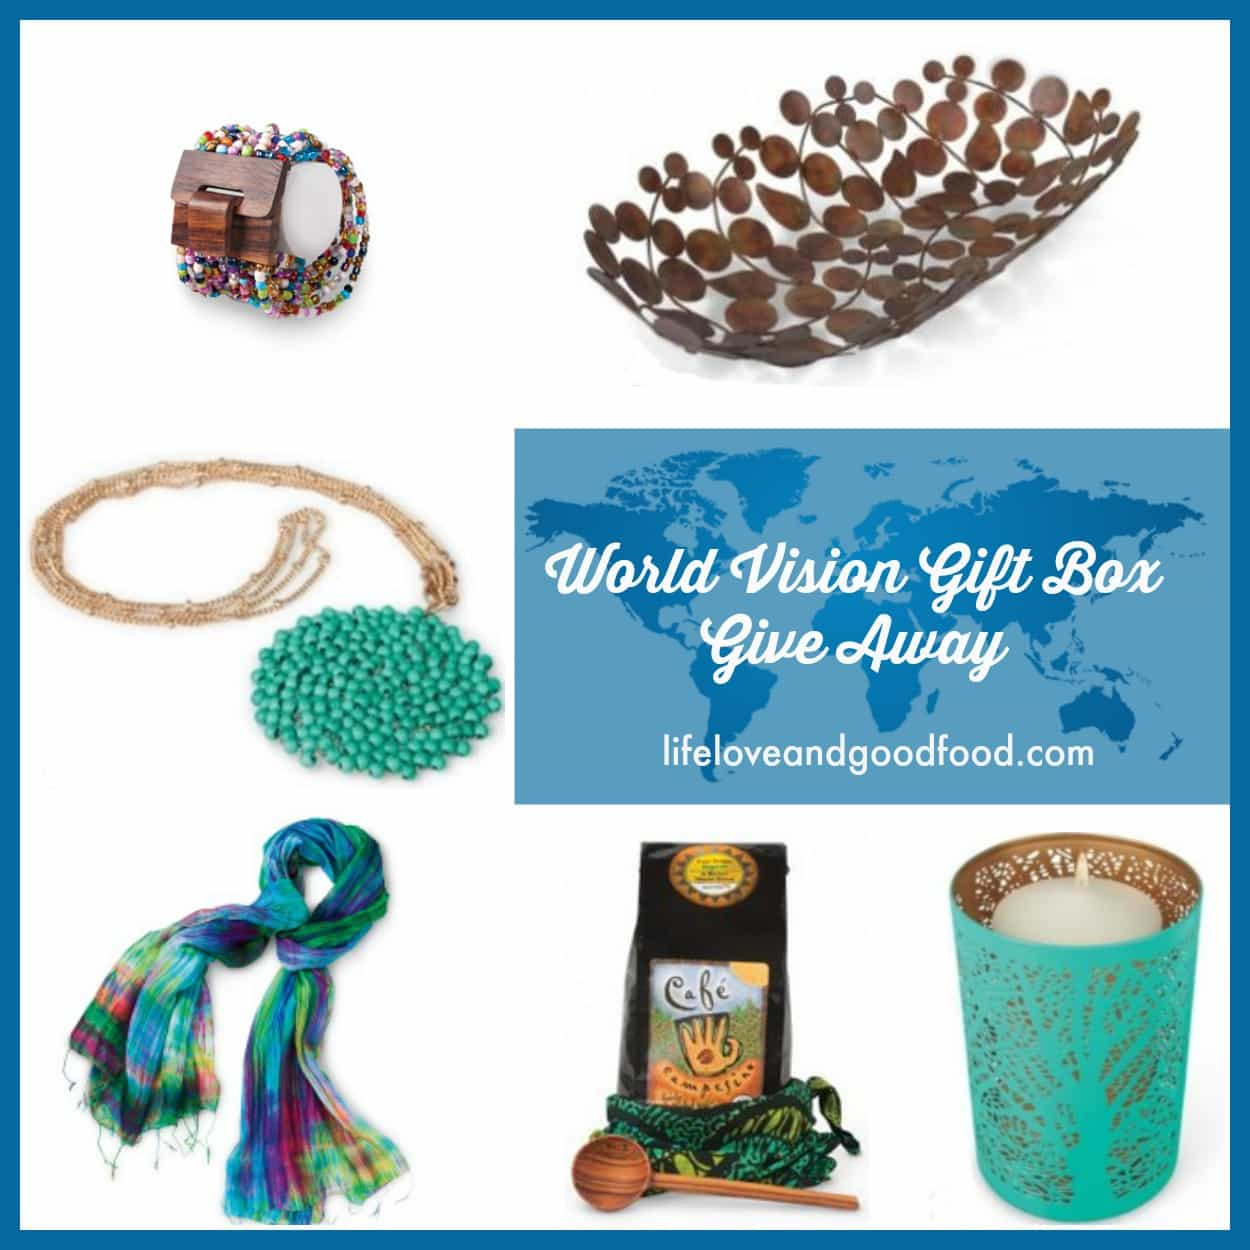 Peace and Harmony. Give gifts that give back this year and enter a giveaway to win beautiful handcrafted gifts from World Vision worth $490. #GiftCatalog | Life, Love, and Good Food